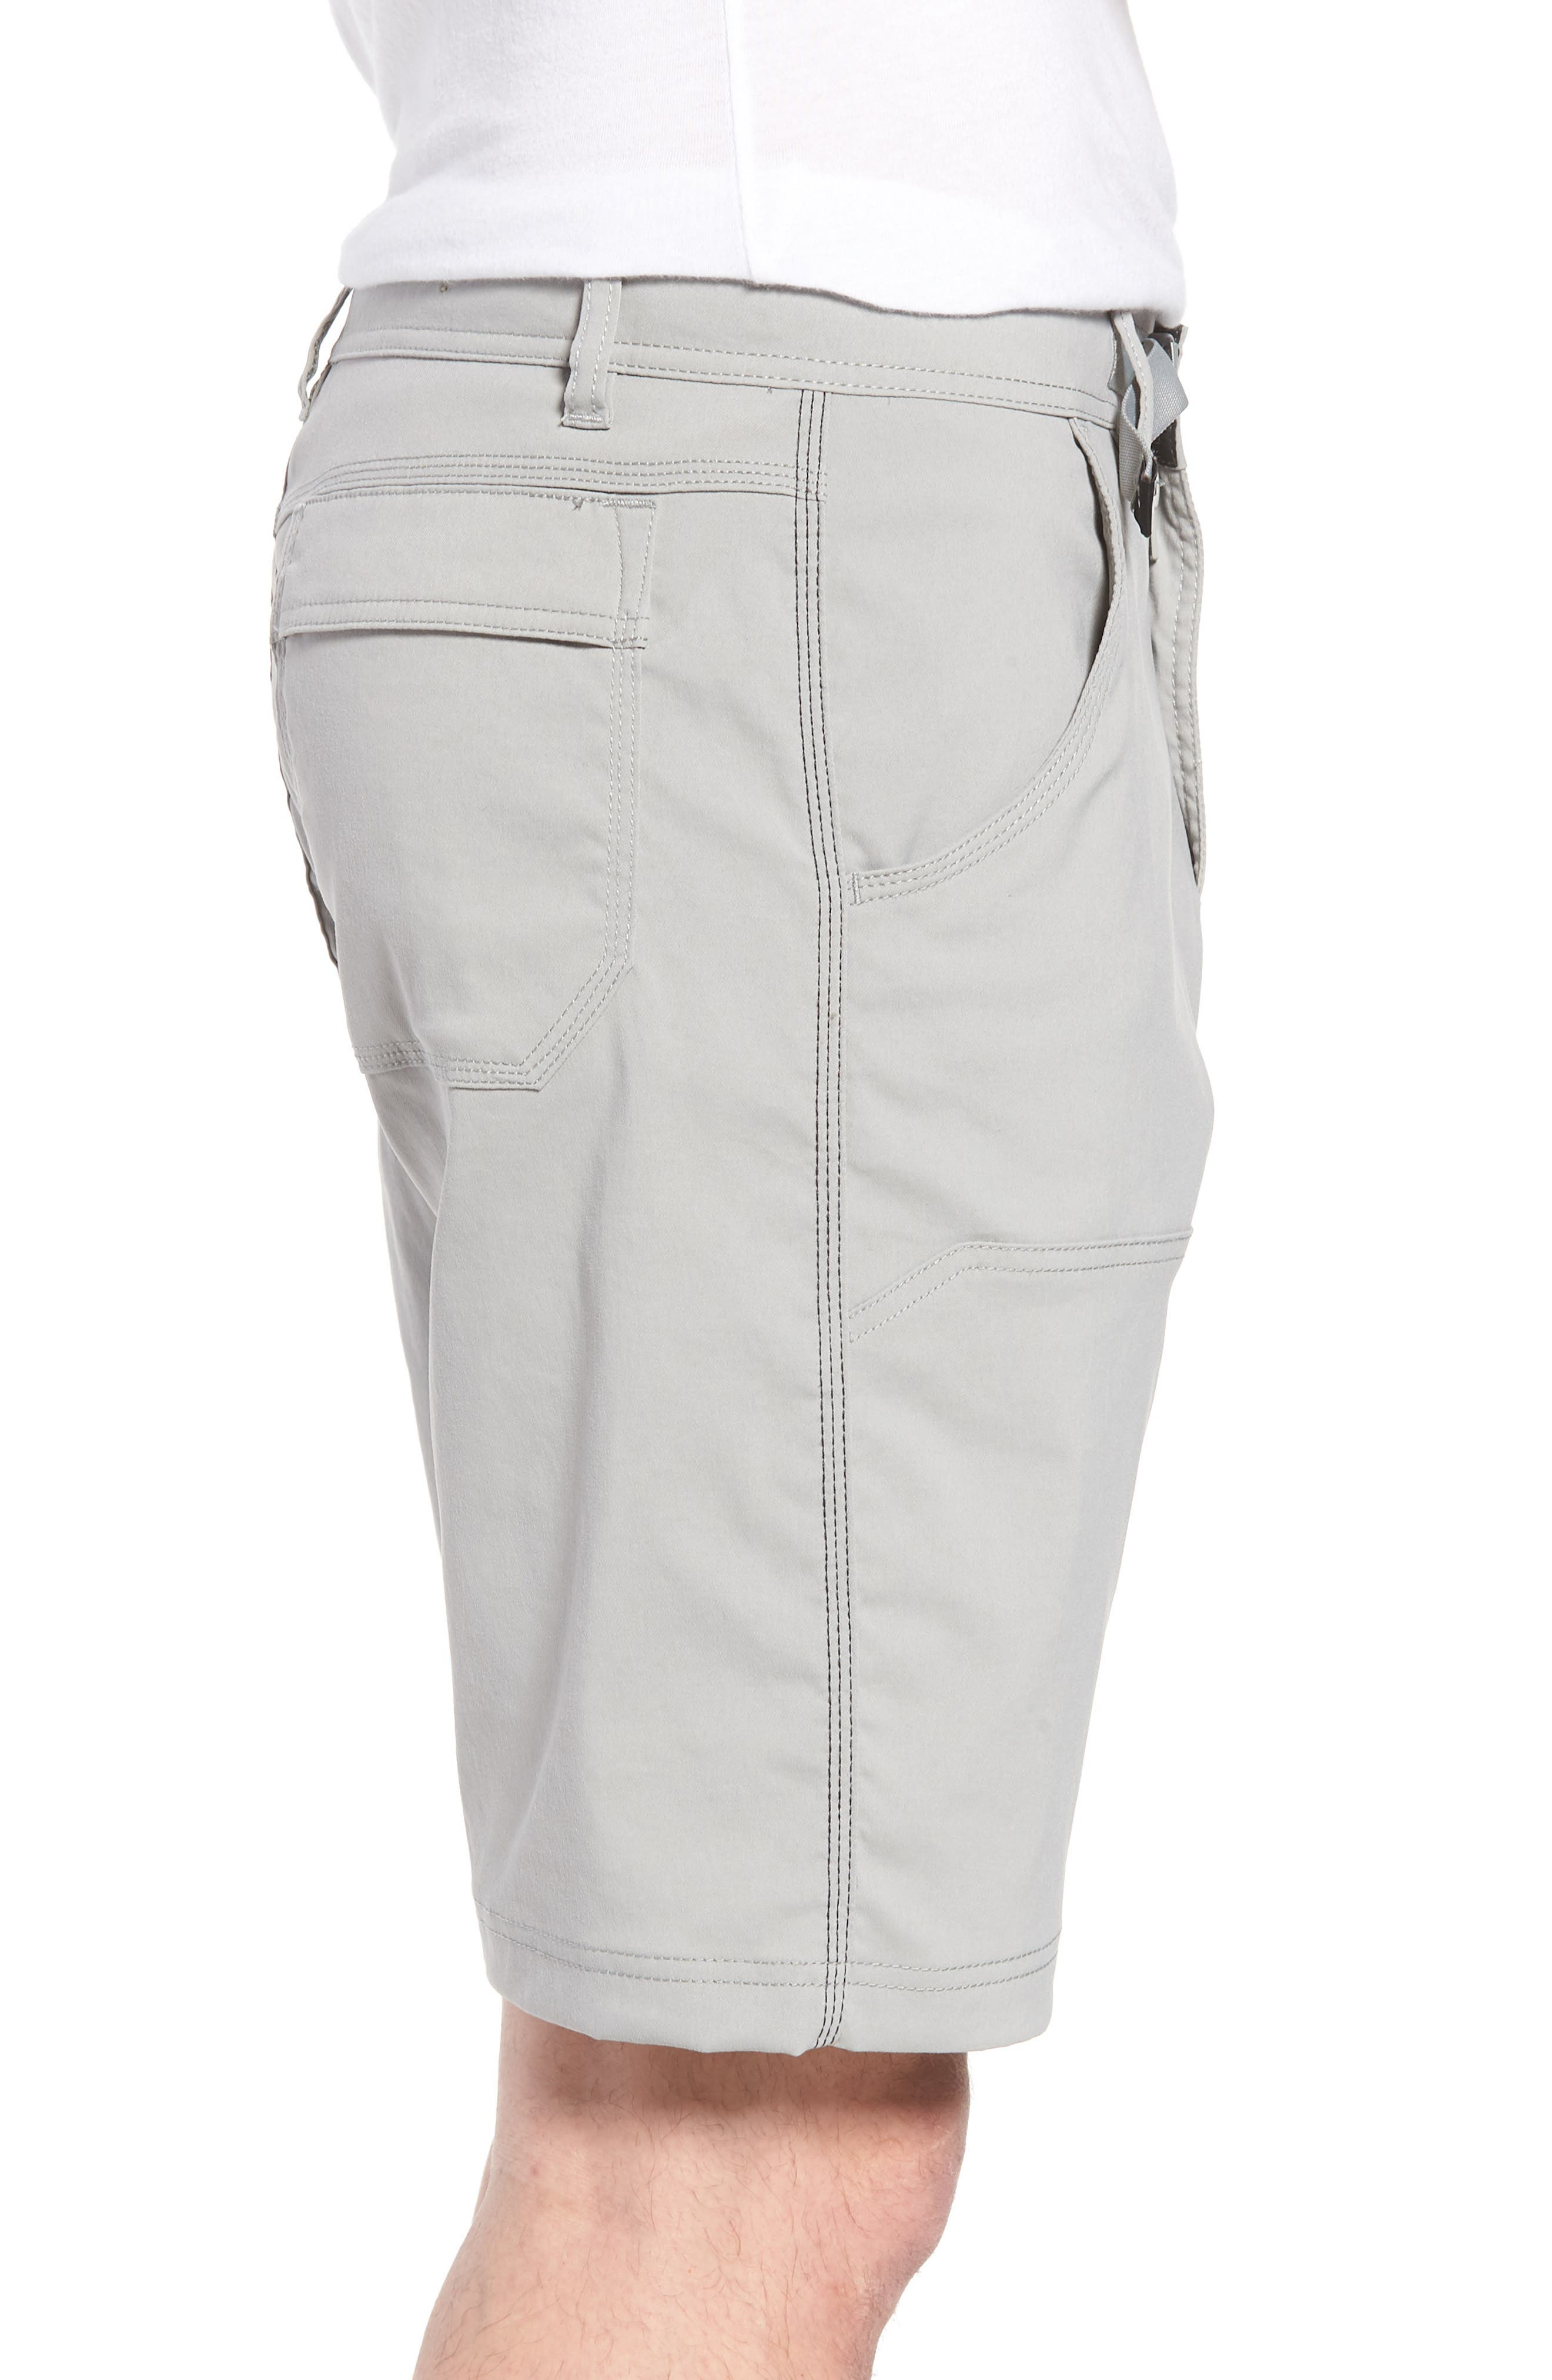 Zion Stretch Shorts,                             Alternate thumbnail 3, color,                             Grey